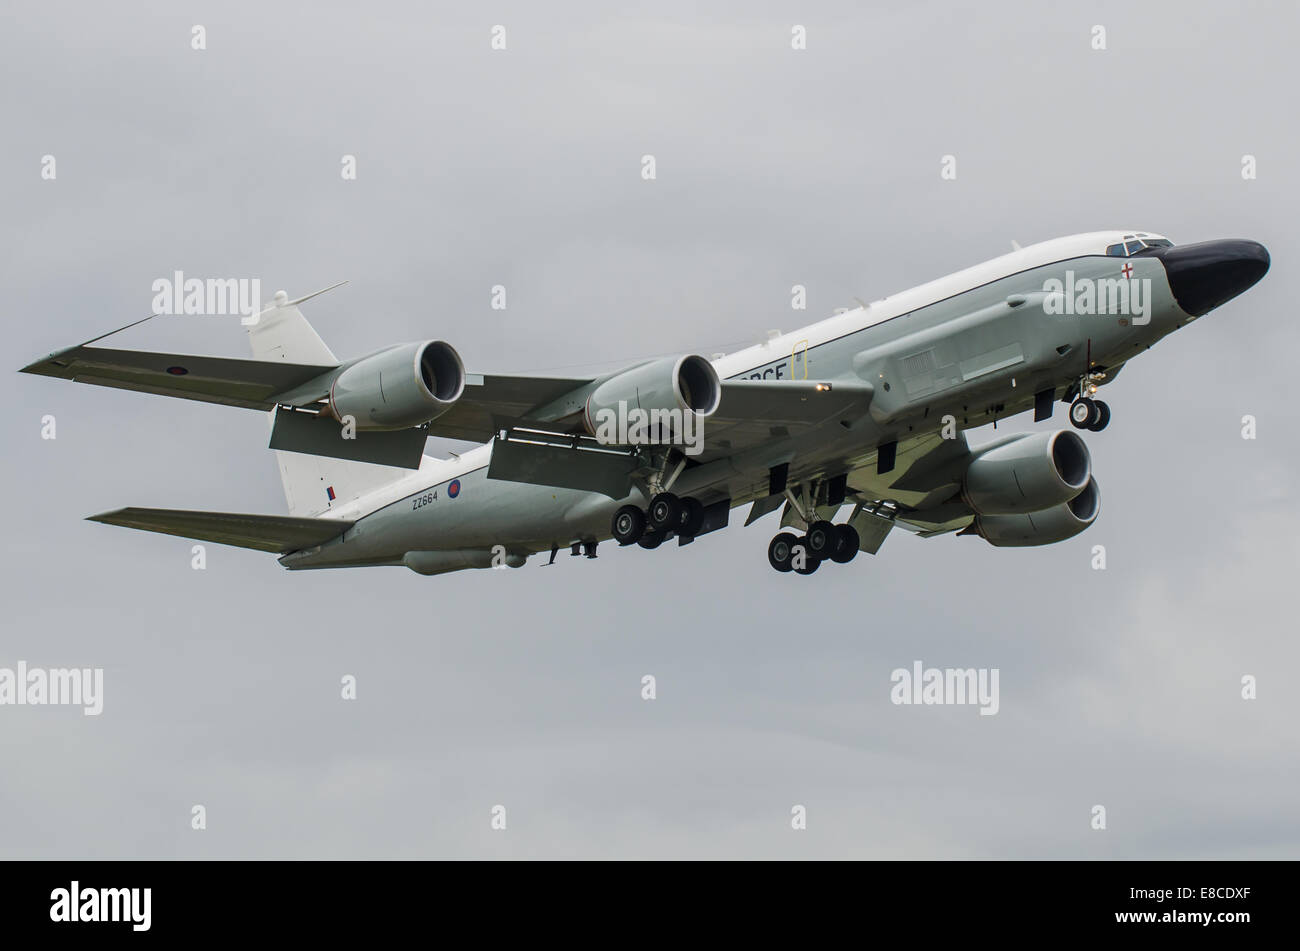 the-boeing-rc-135w-rivet-joint-is-a-large-all-weather-electronic-surveillance-E8CDXF.jpg